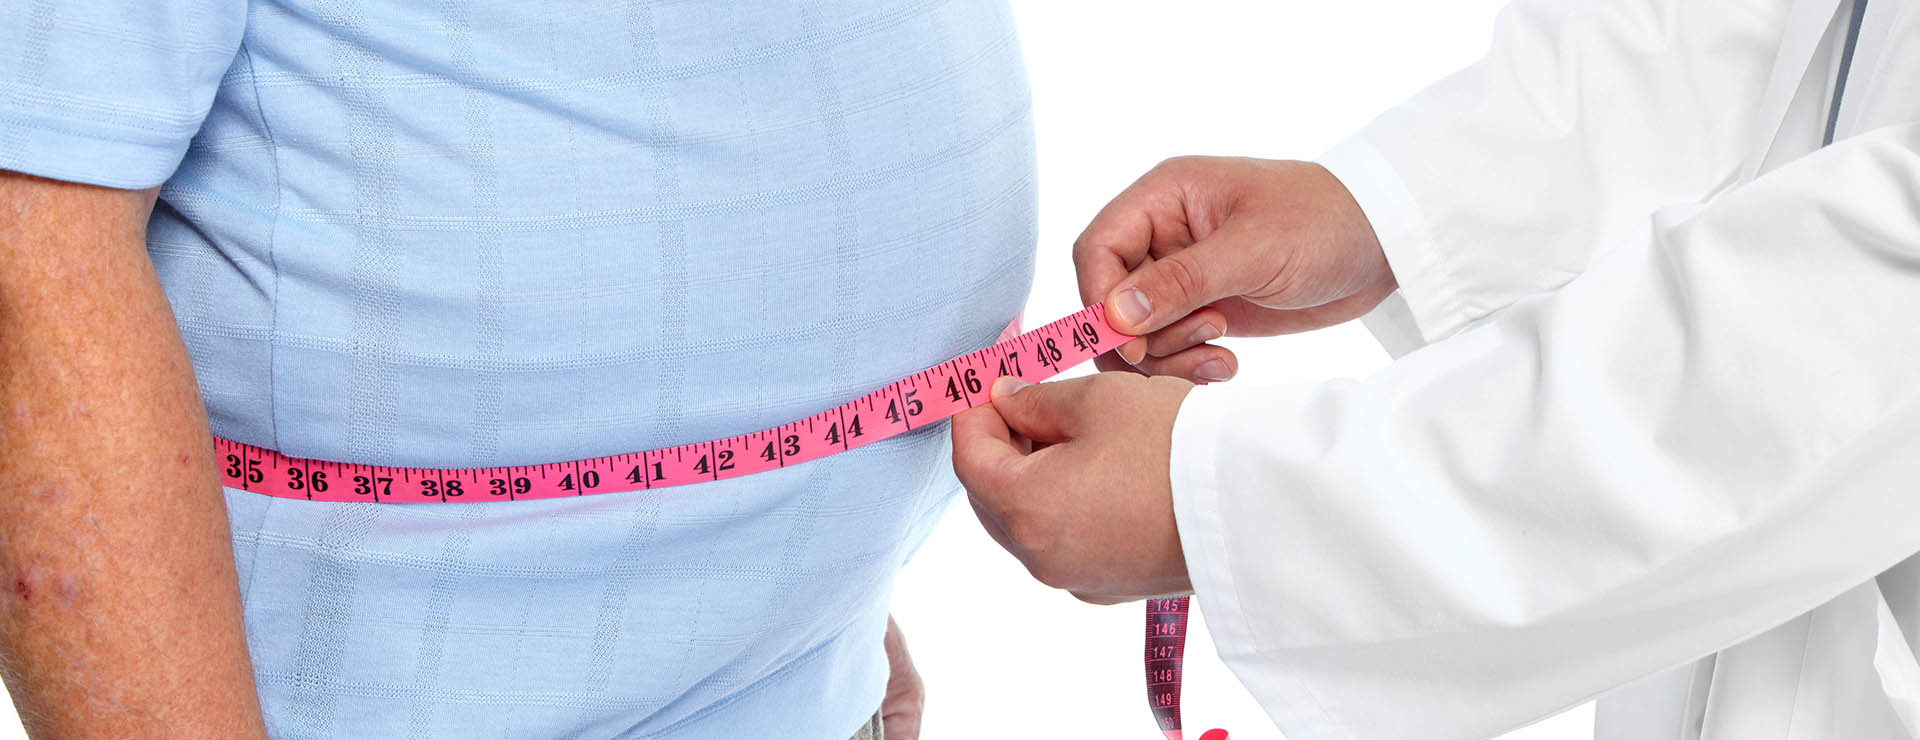 Obesity is a known risk factor